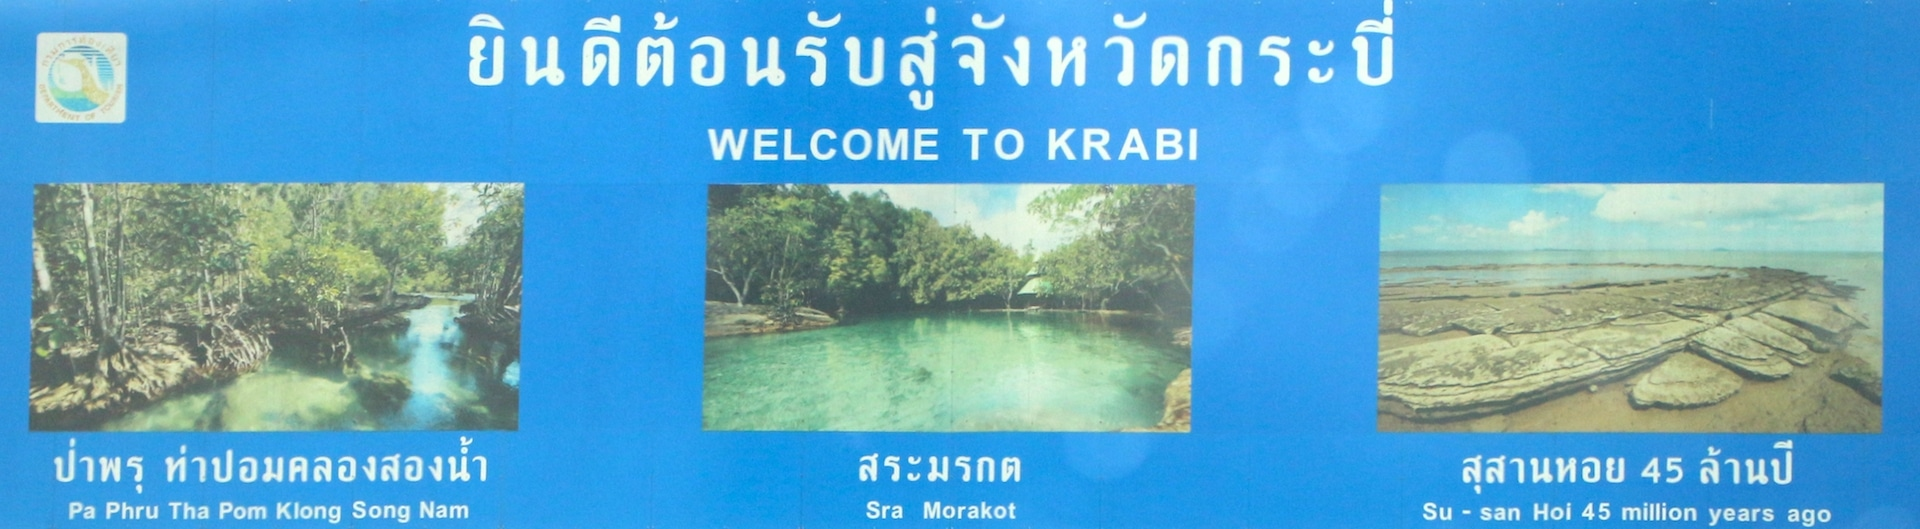 Welcome to Krabi - Krabi Beaches.jpg